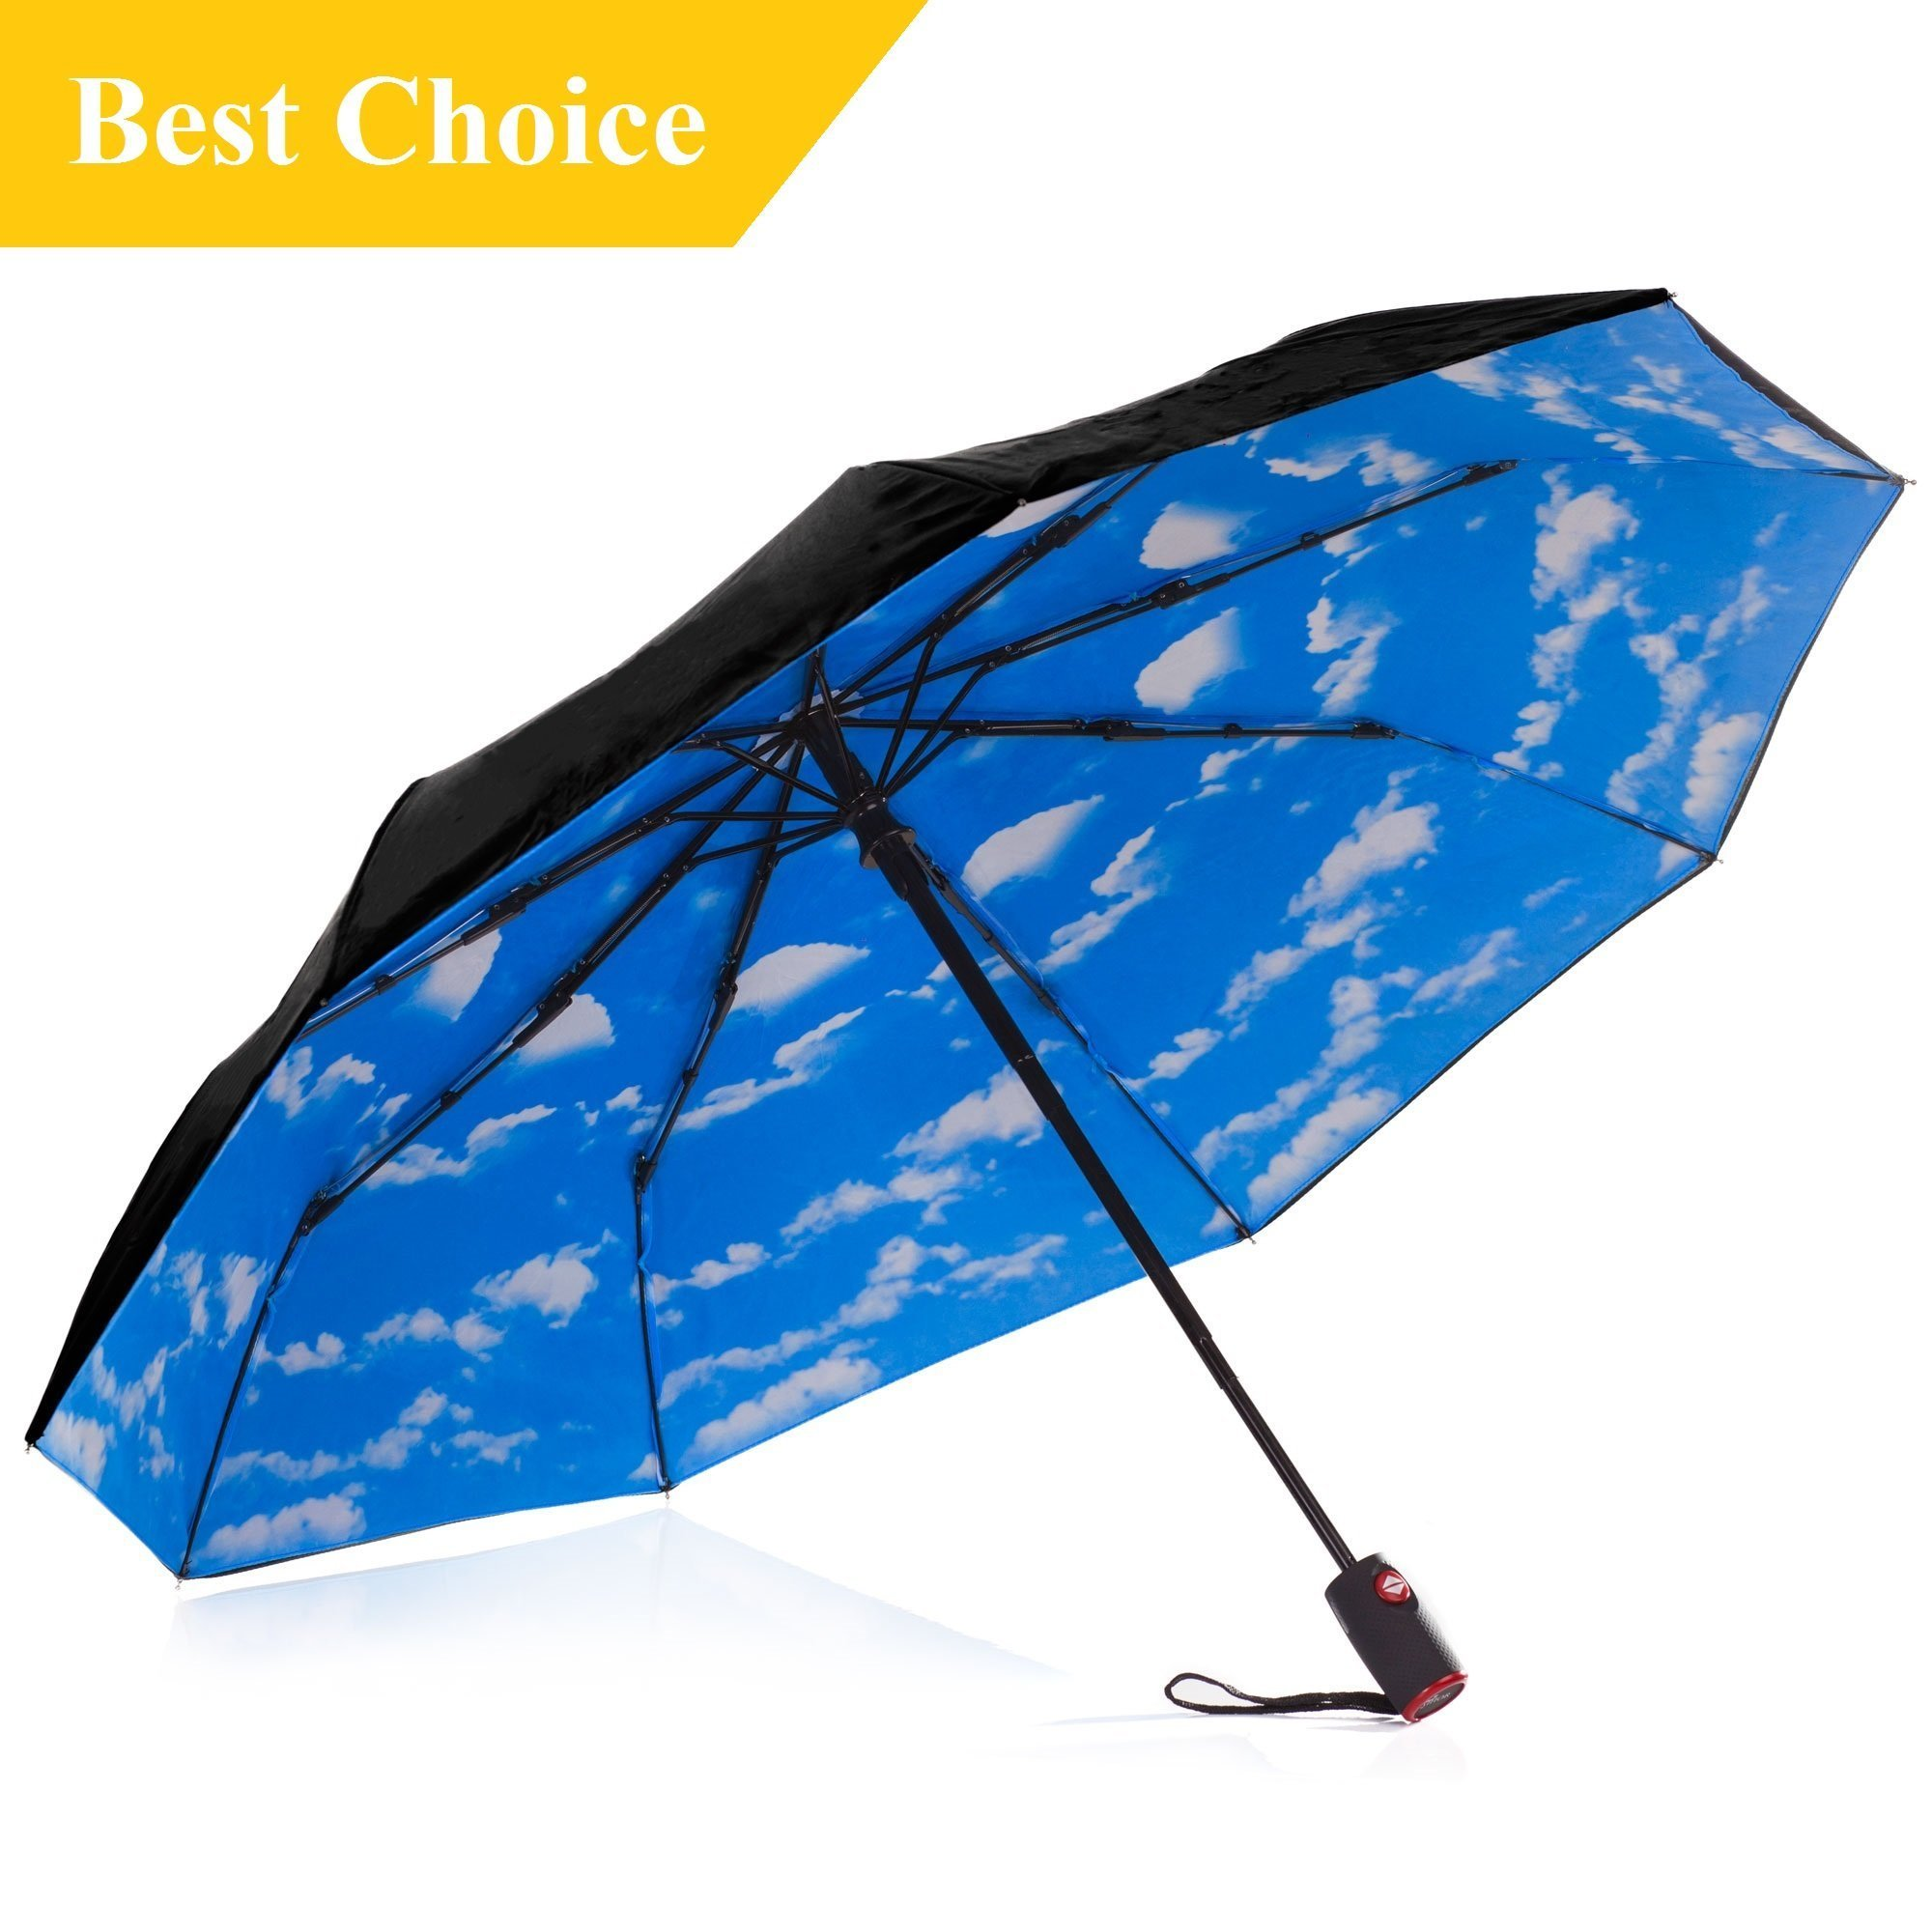 Cheap Totes Compact Umbrella Find Totes Compact Umbrella Deals On